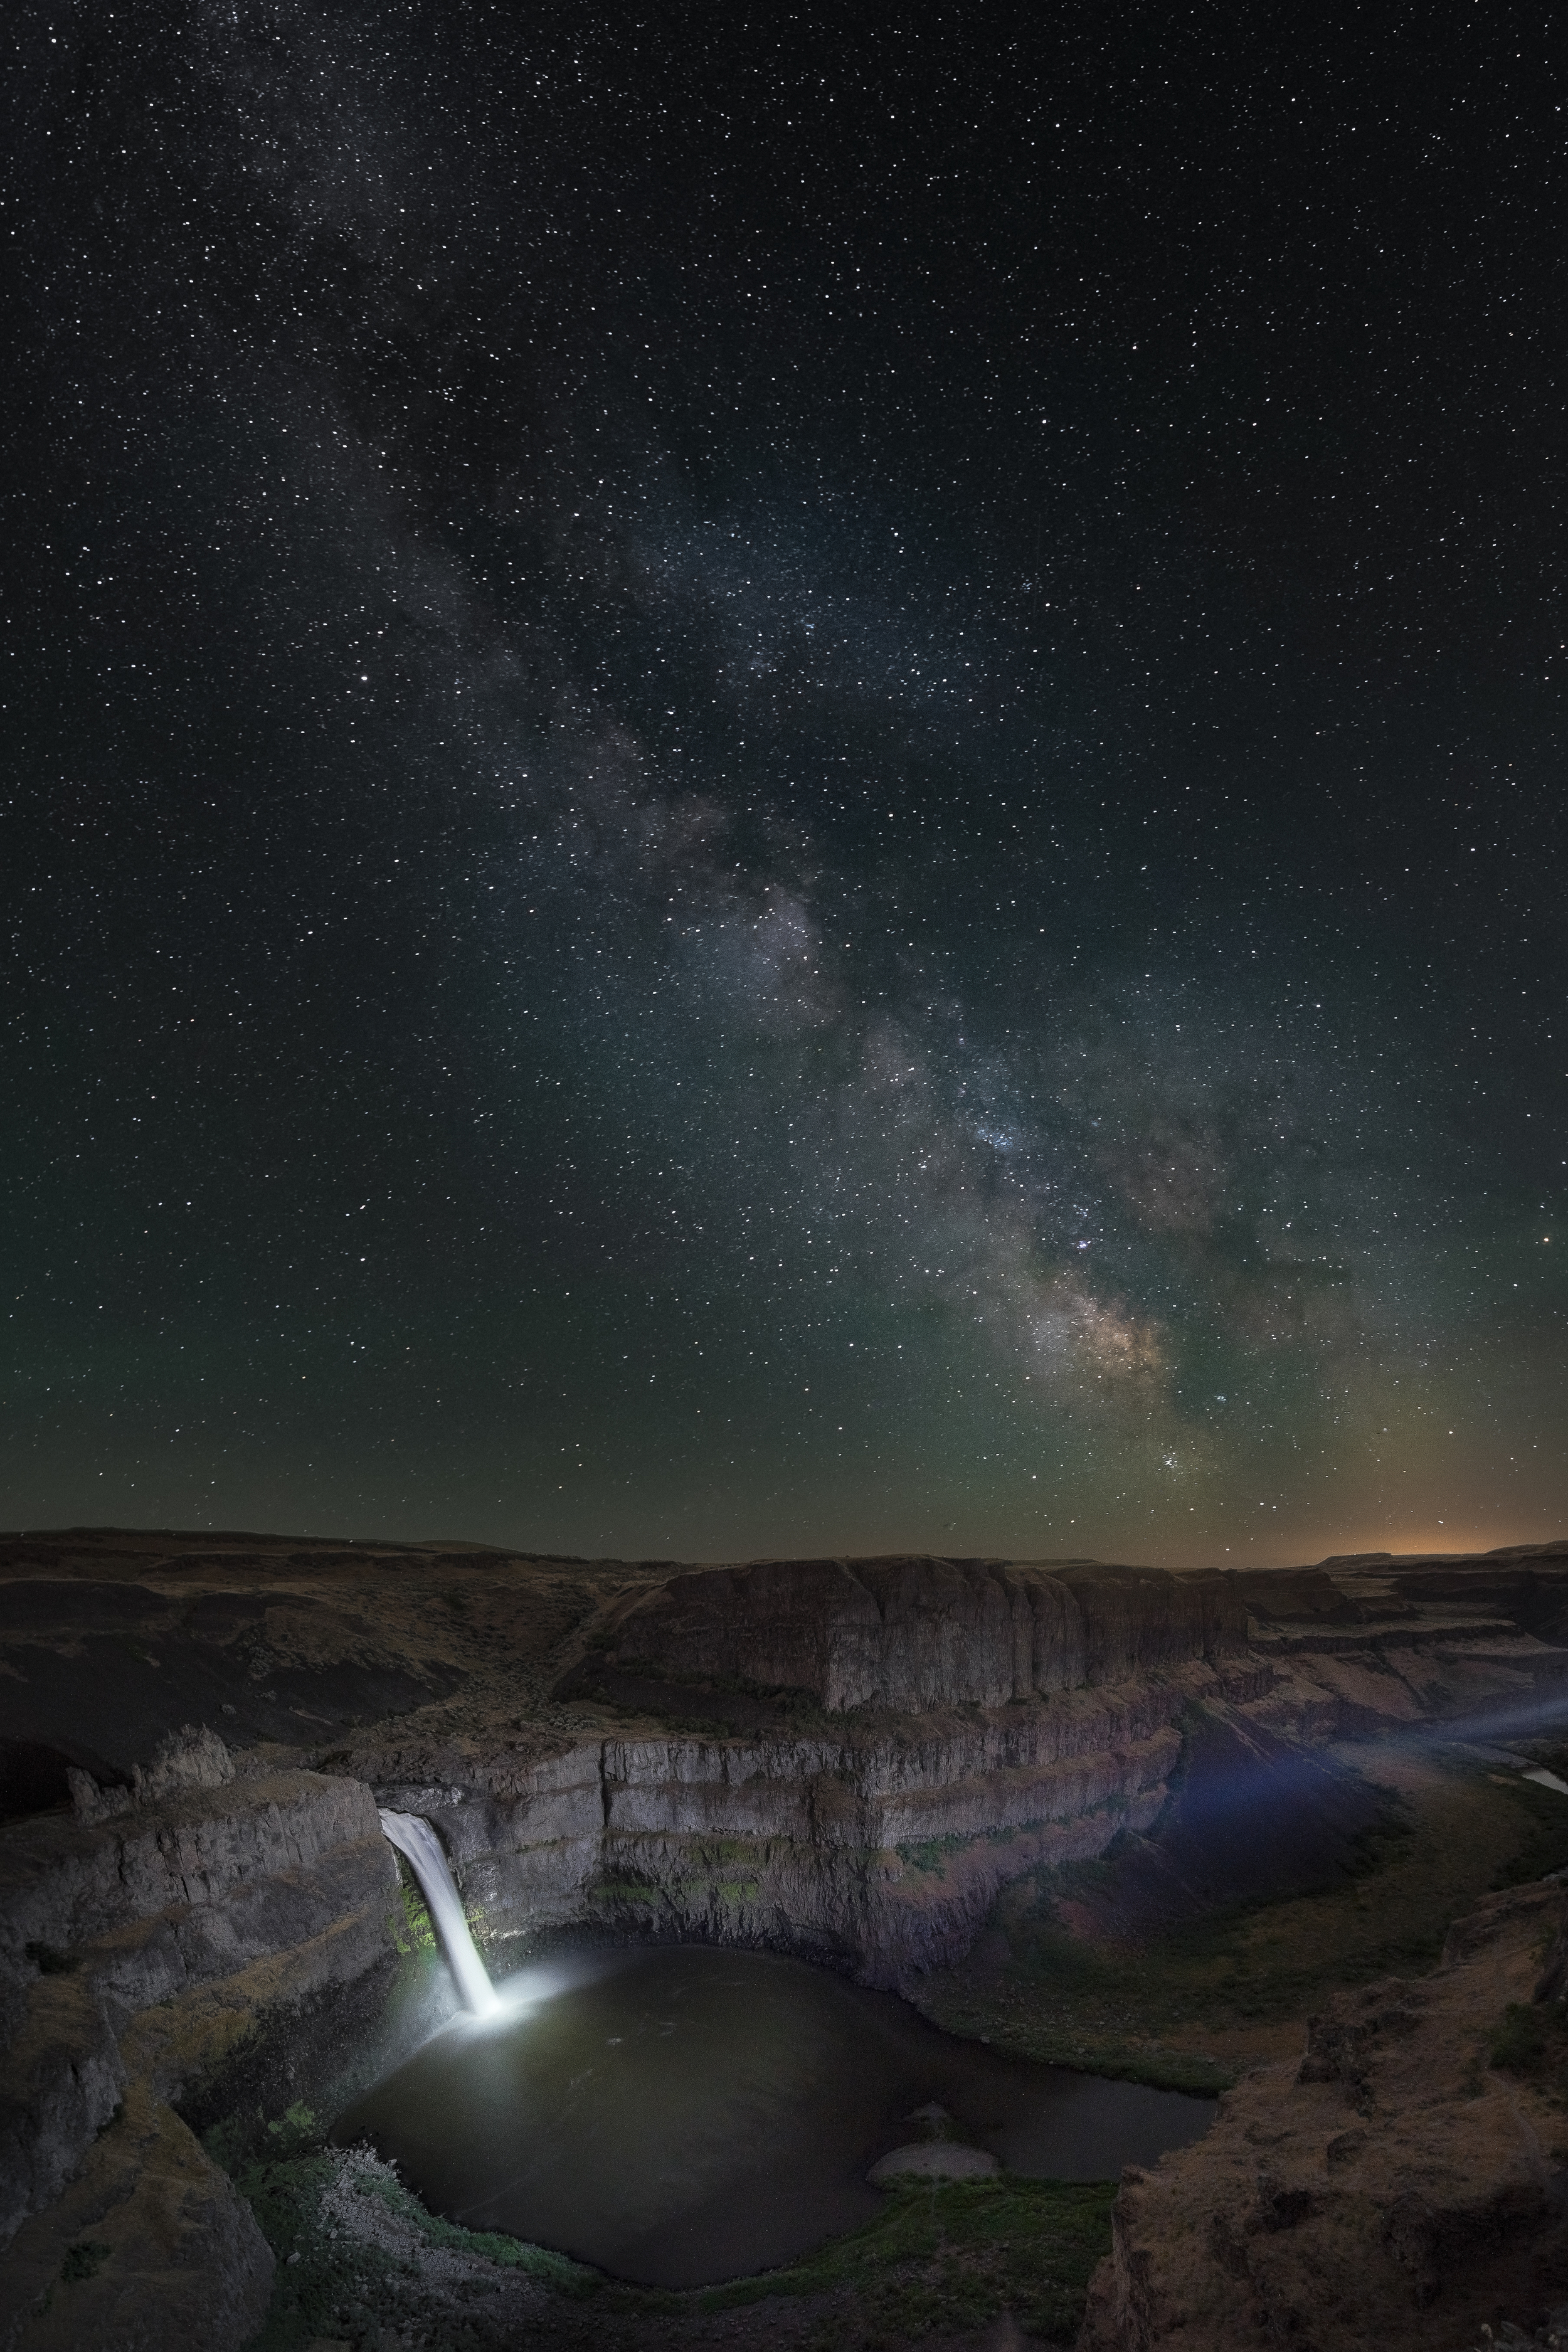 stock-photo-palouse-falls-vs-milky-way-111890141.jpg